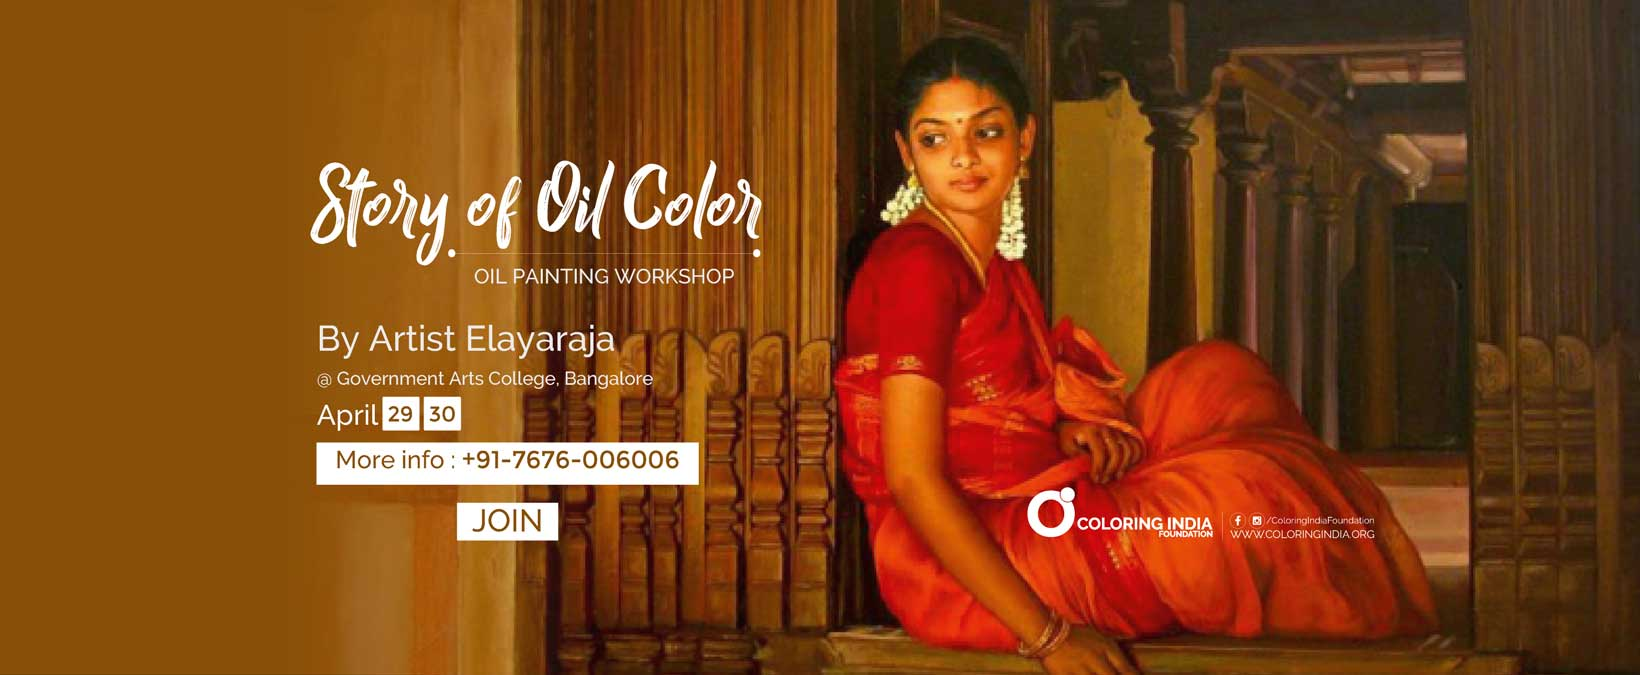 Story of Oil Color – Oil Painting Workshop by S.Elayaraja | Bangalore